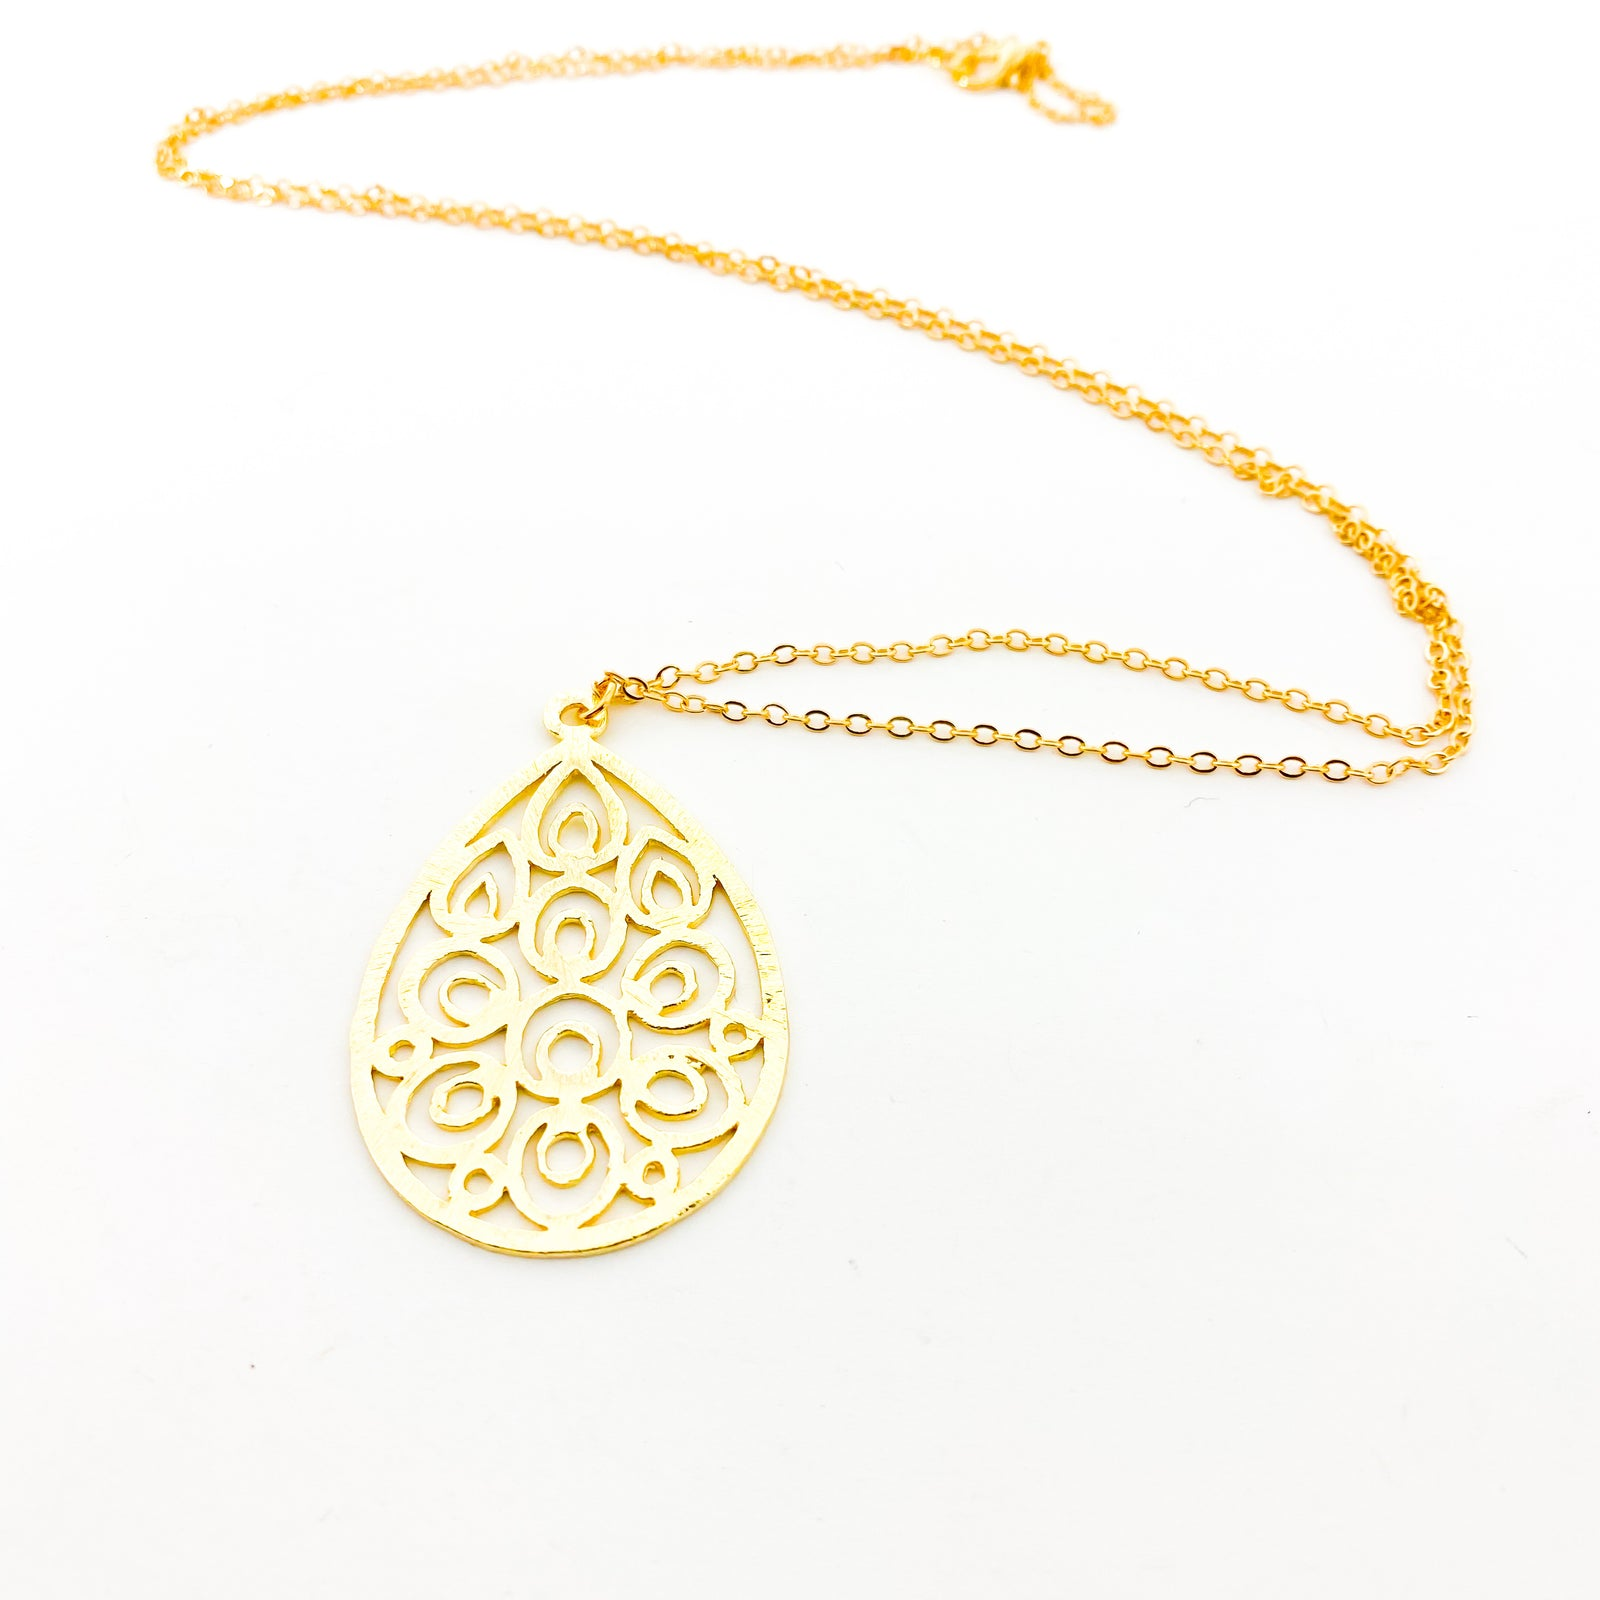 LONG BRUSHED FLORAL DROP NECKLACE | GOLD